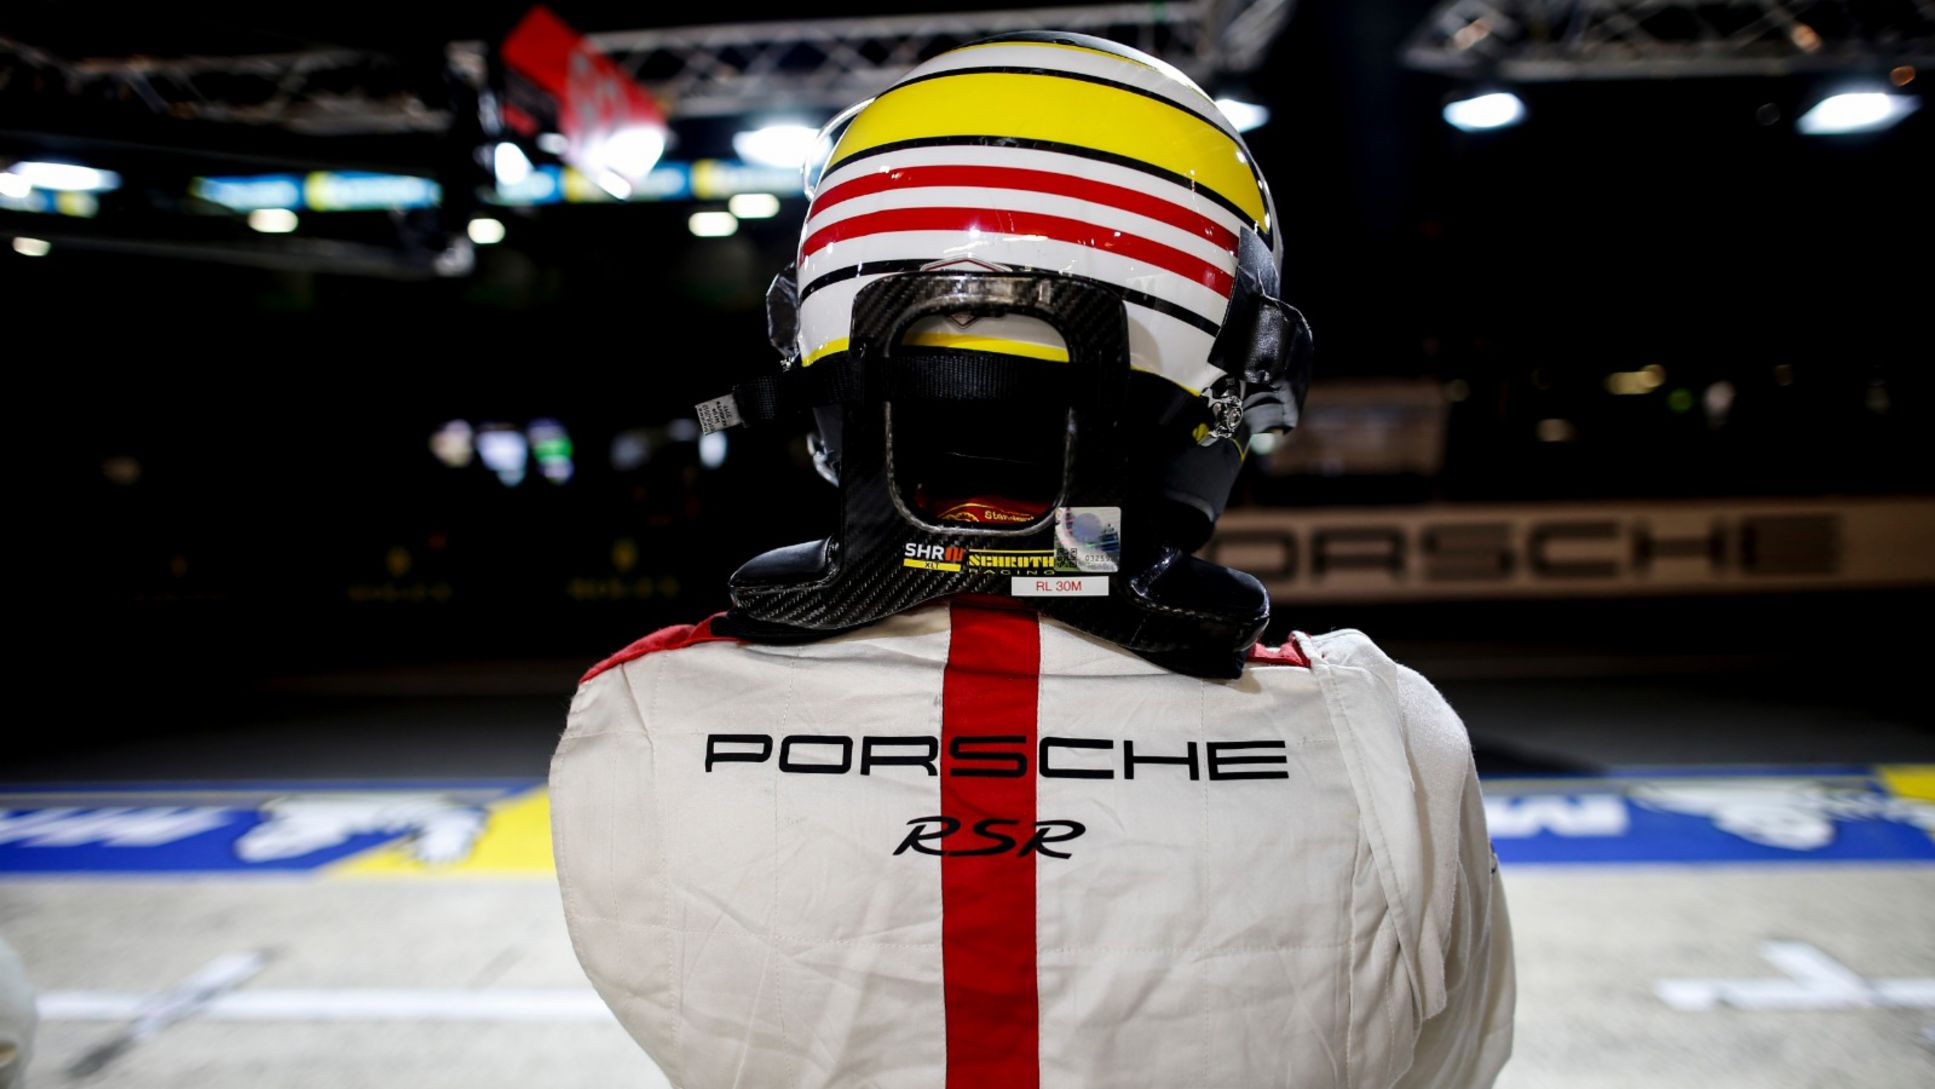 WEC: the story behind the works drivers' helmet designs - Image 8